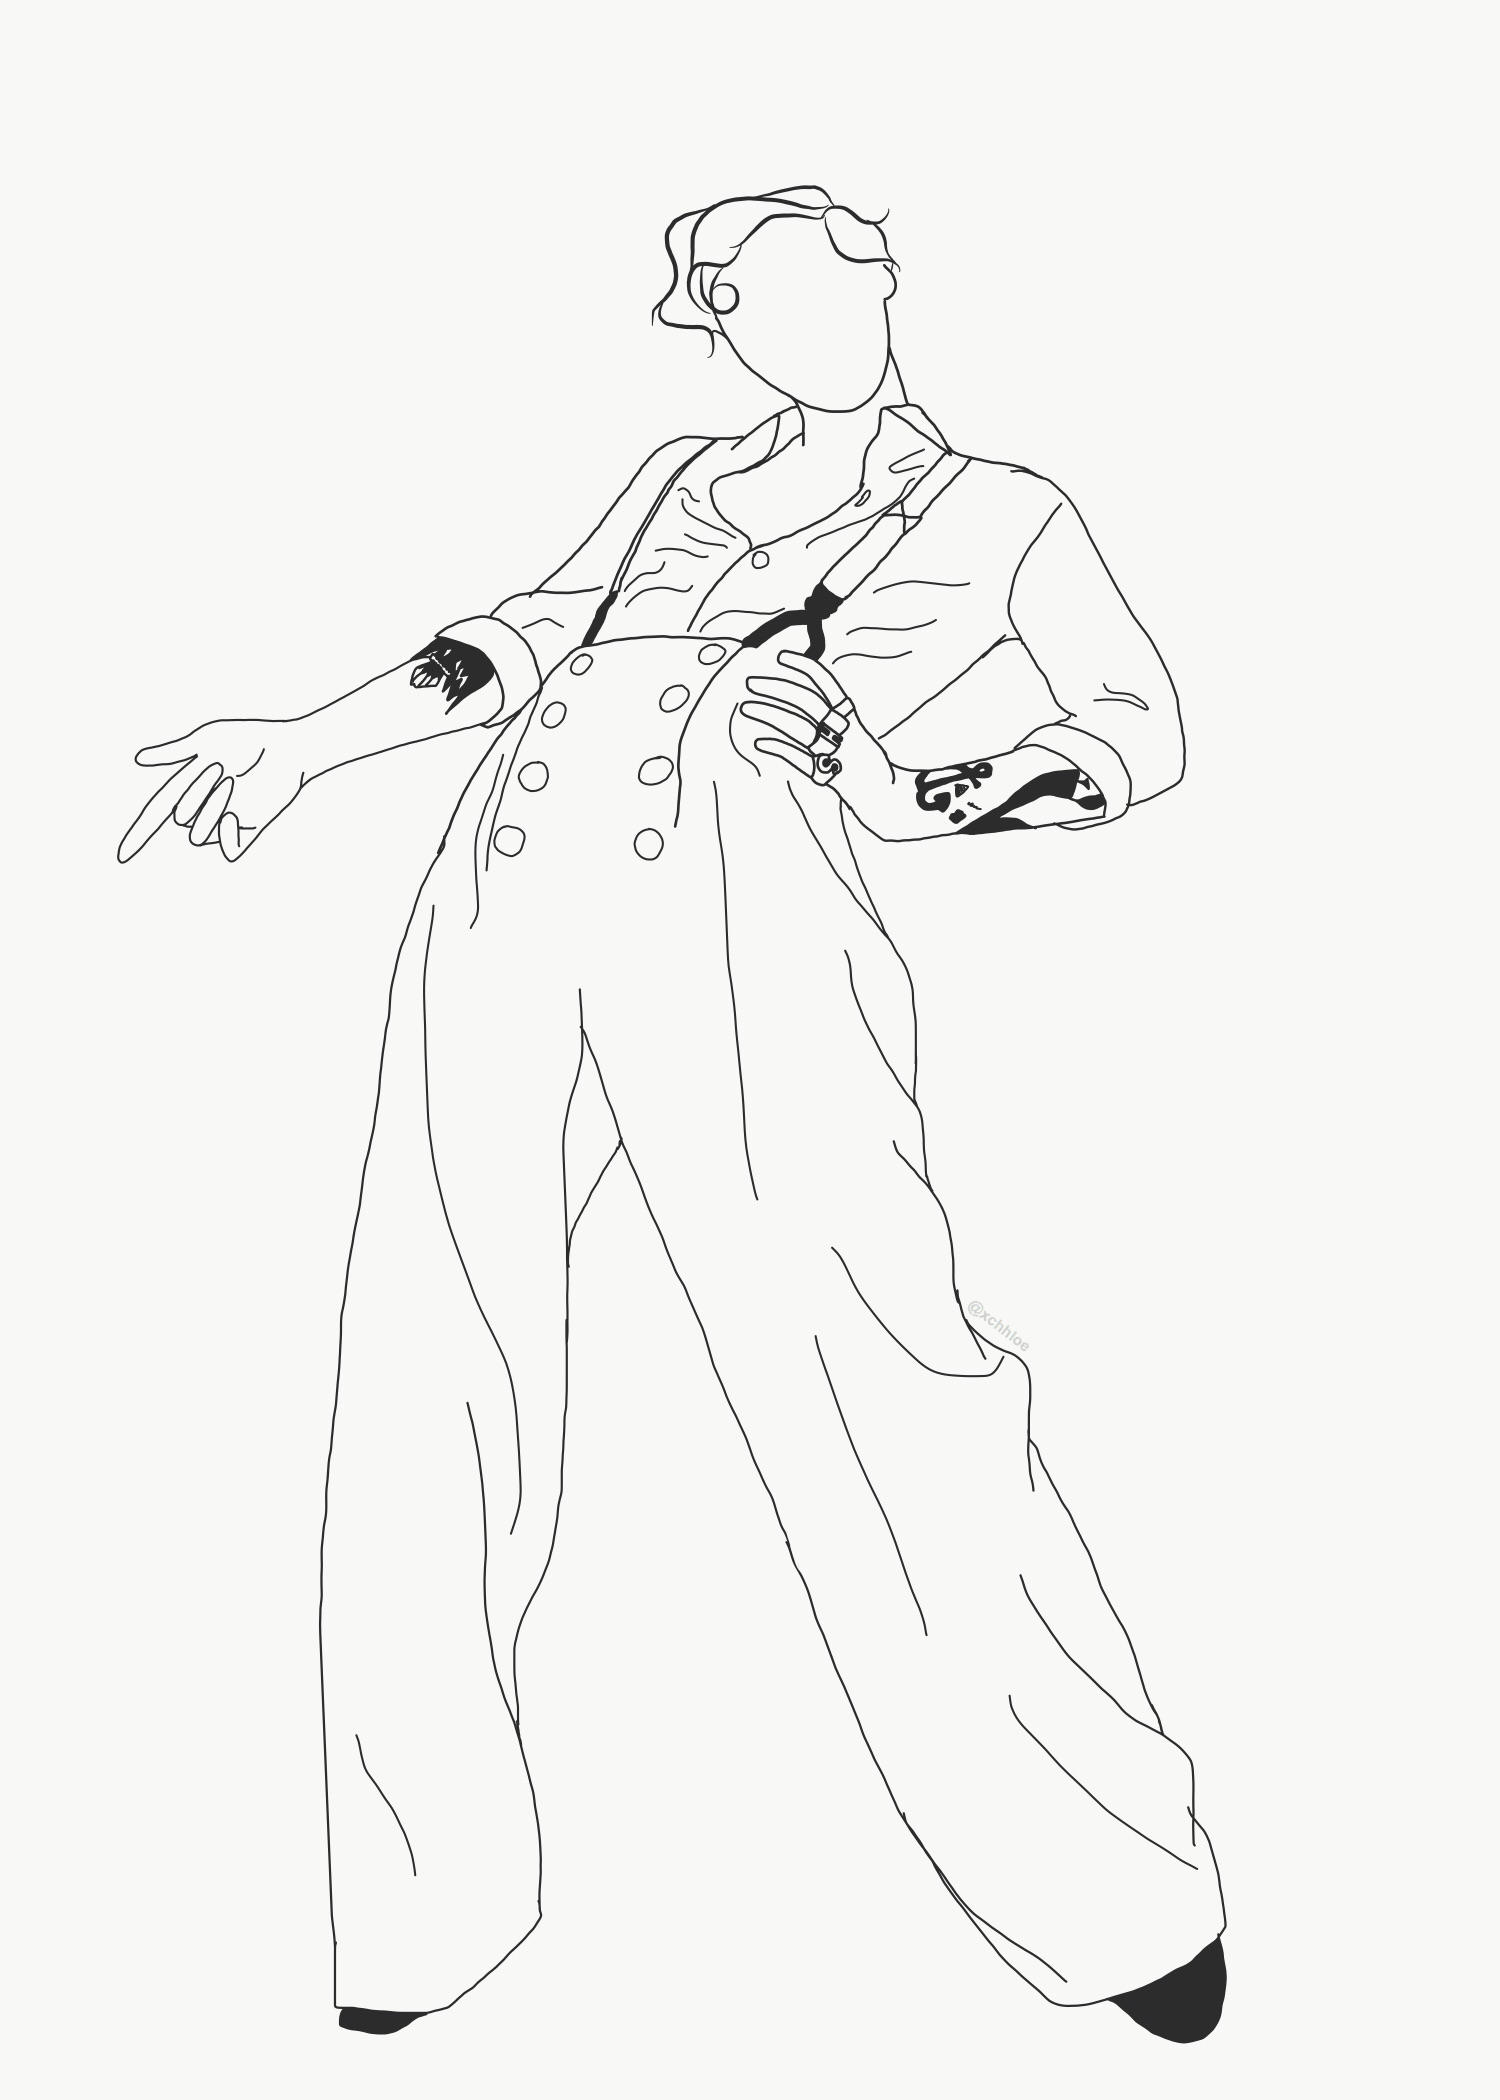 harry styles coloring page harry styles coloring page at getdrawings free download coloring styles harry page